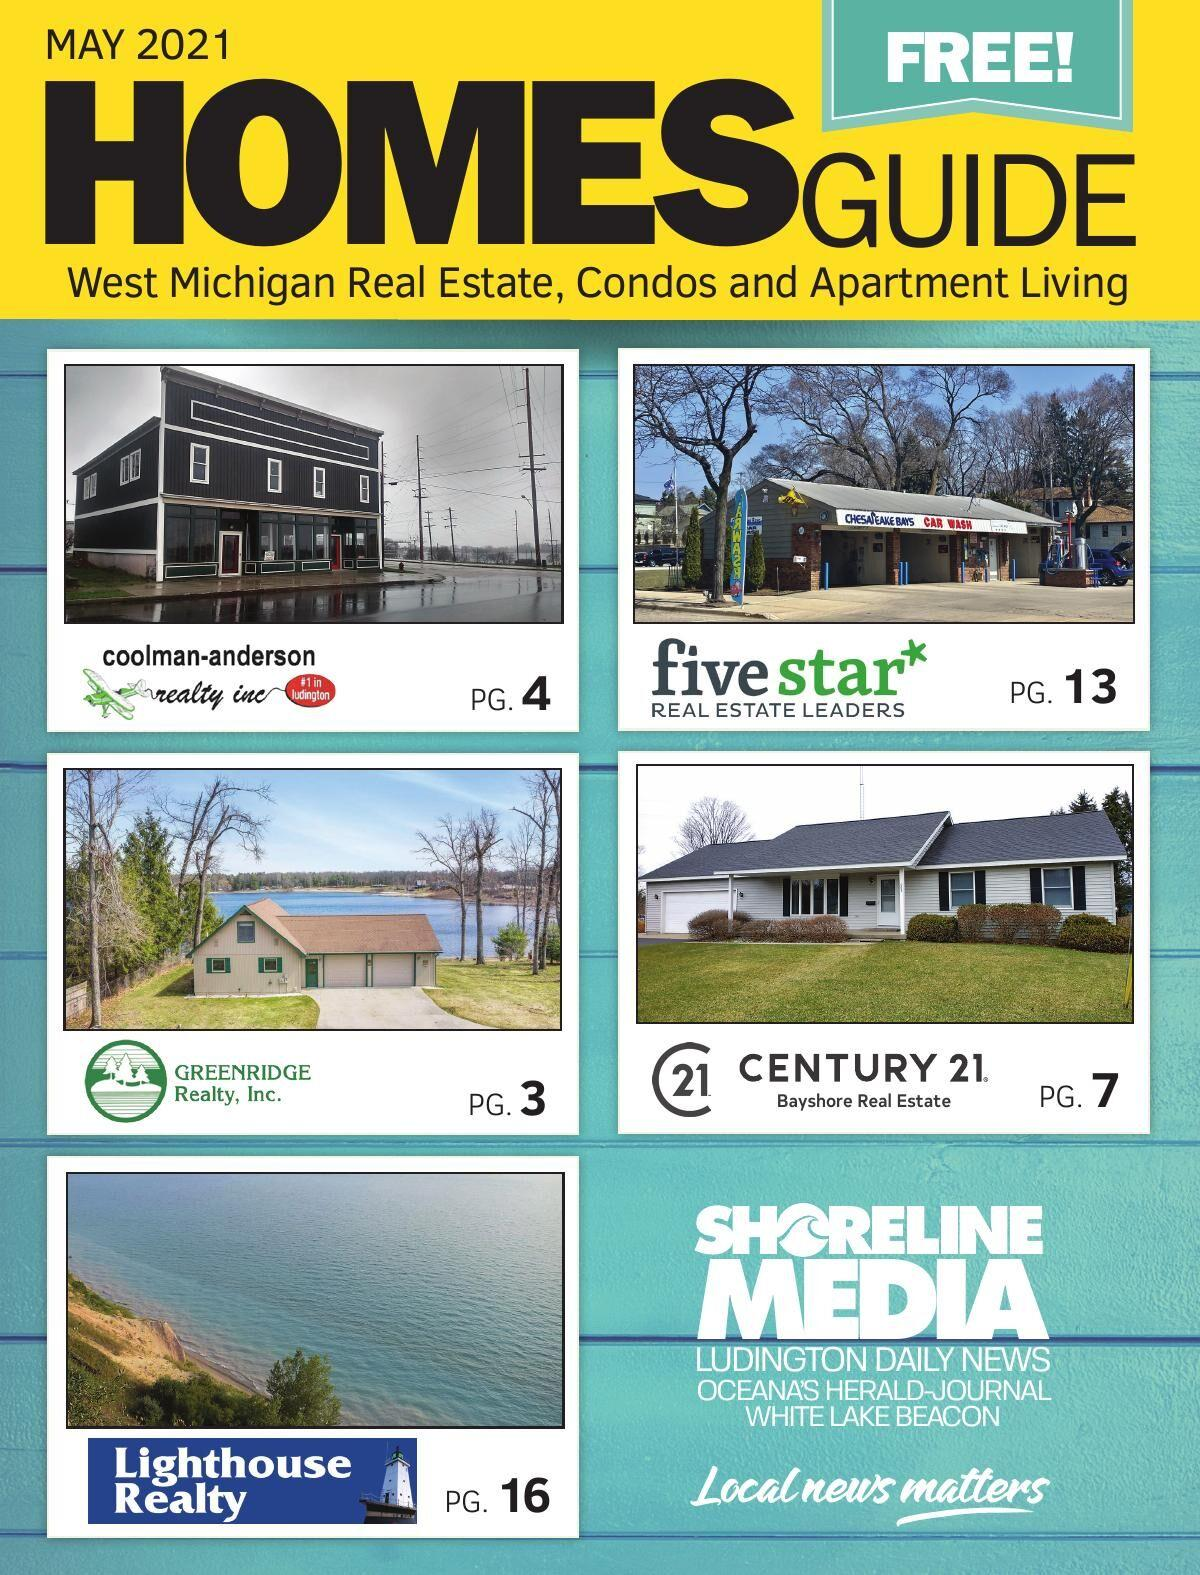 Homes Guide - May 2021